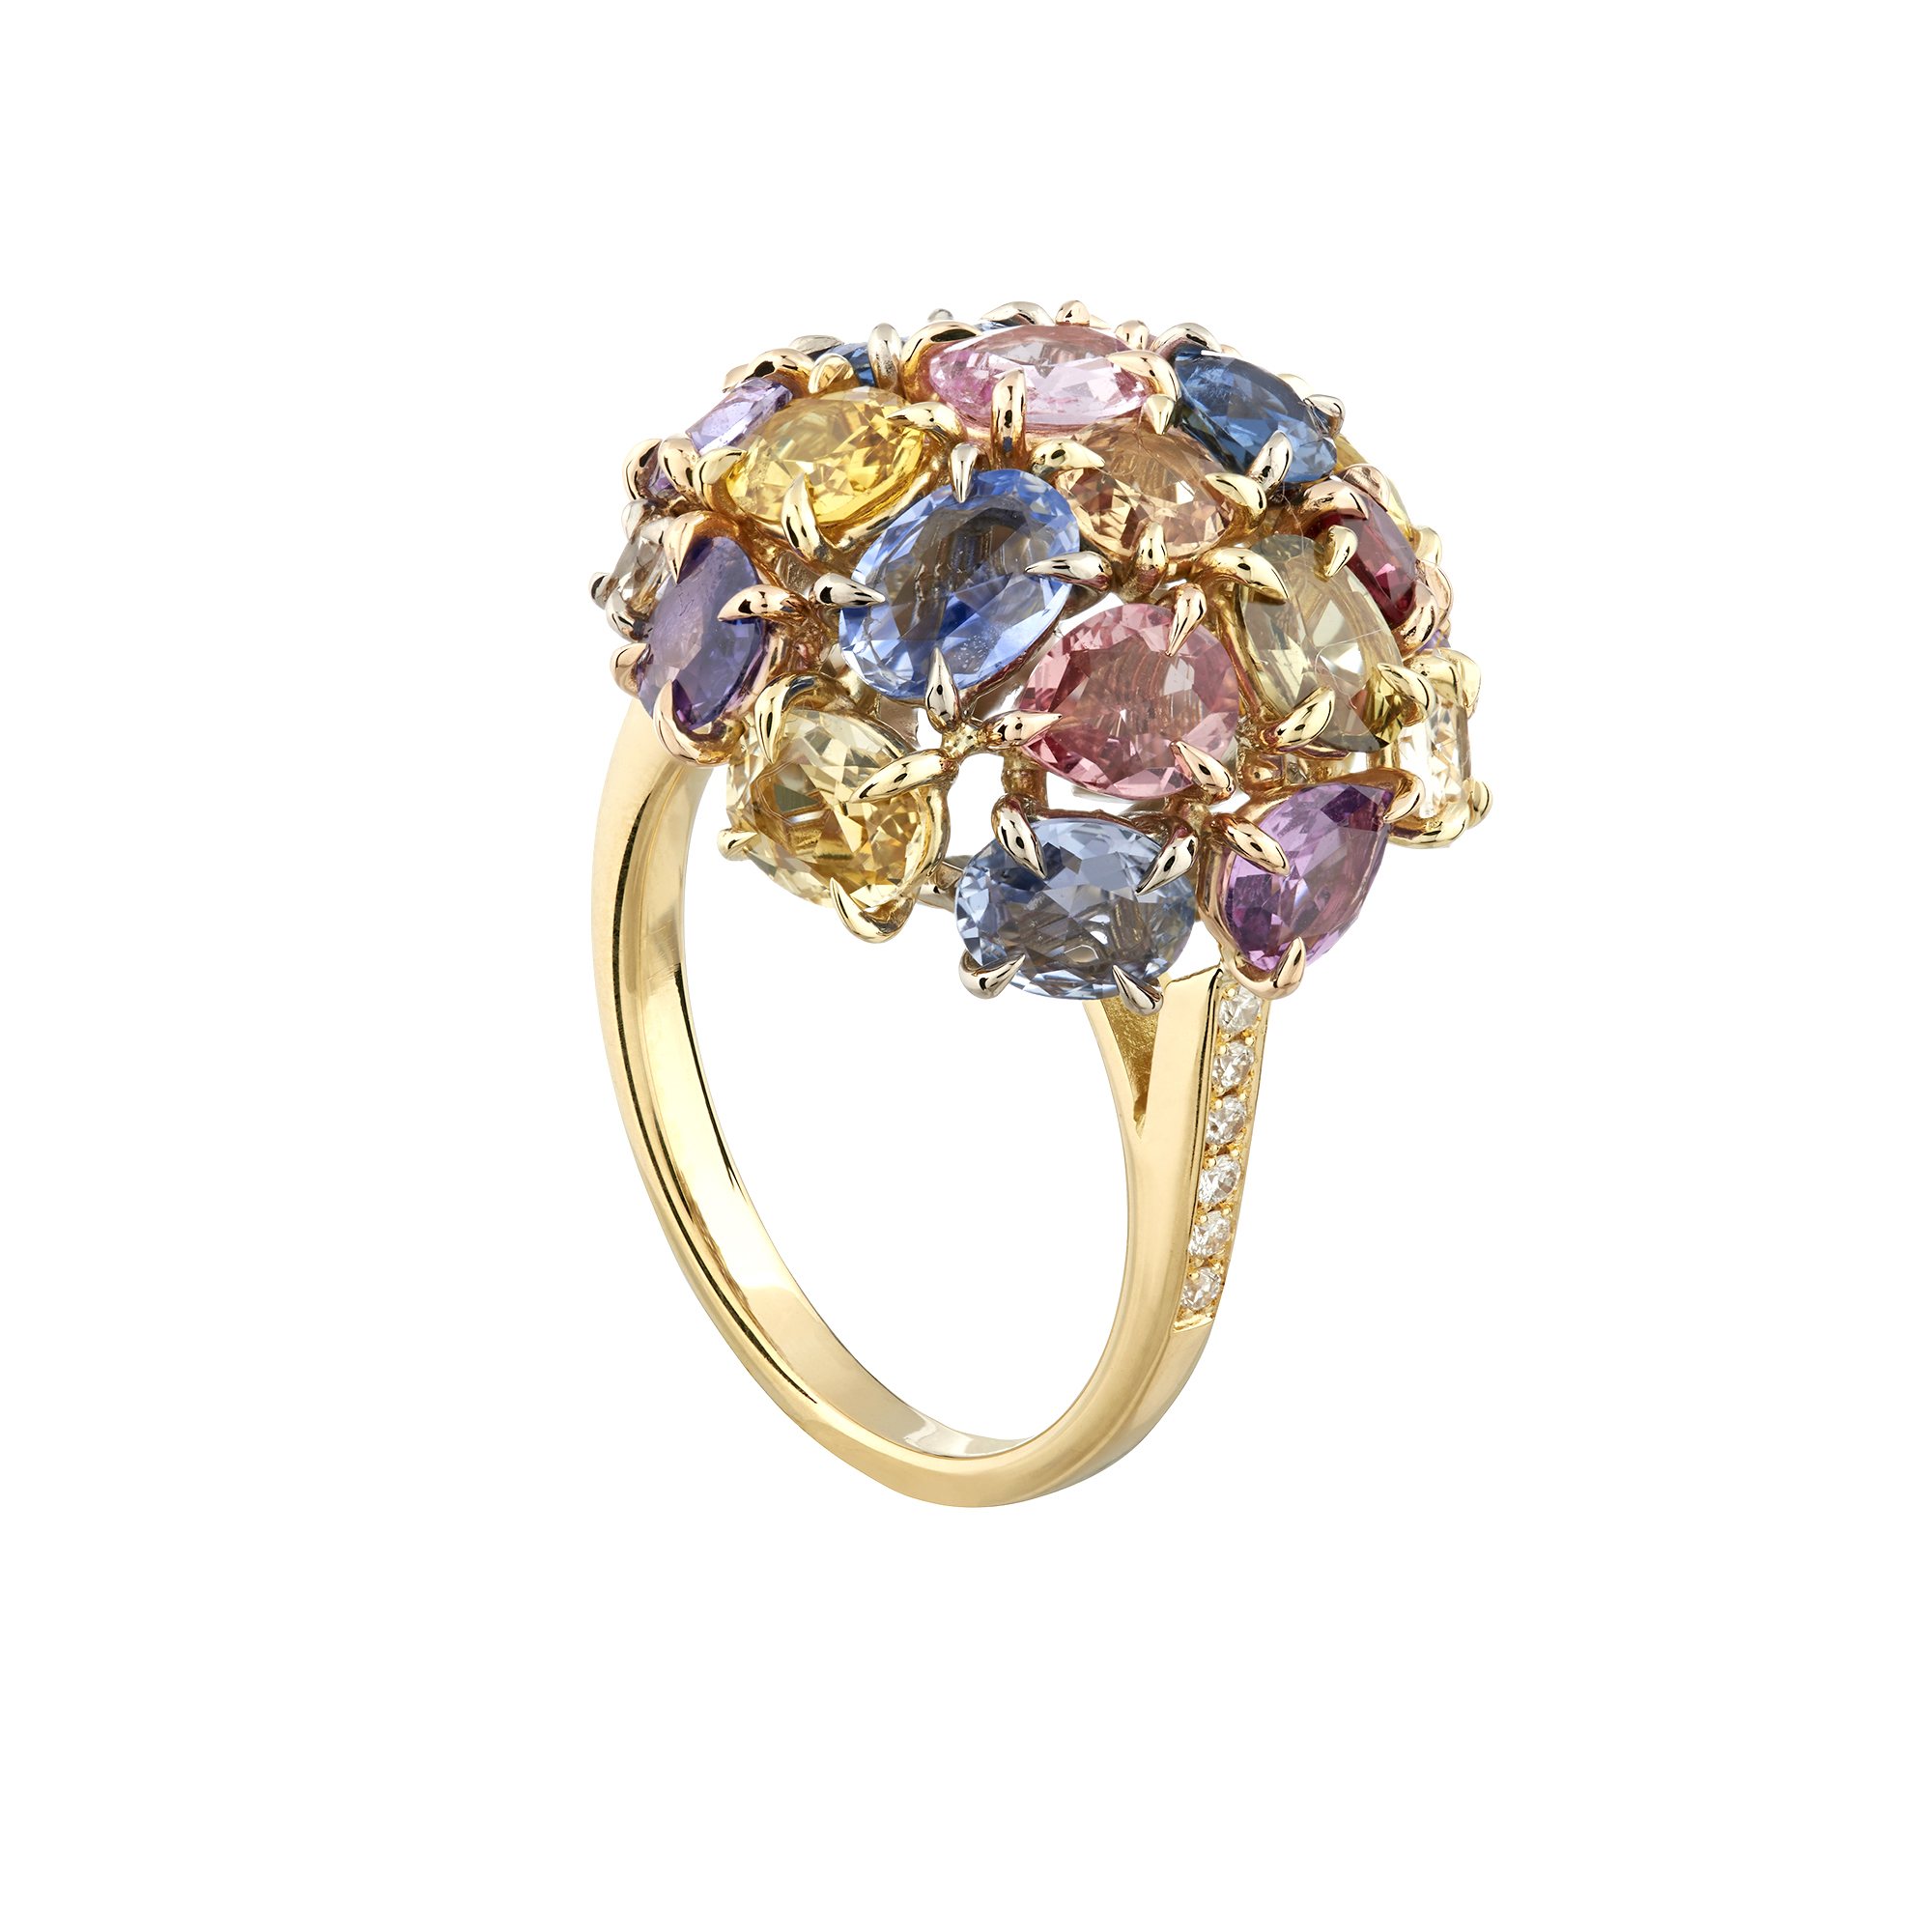 18ct yellow gold Limited Edition Rainbow Sapphire cluster ring